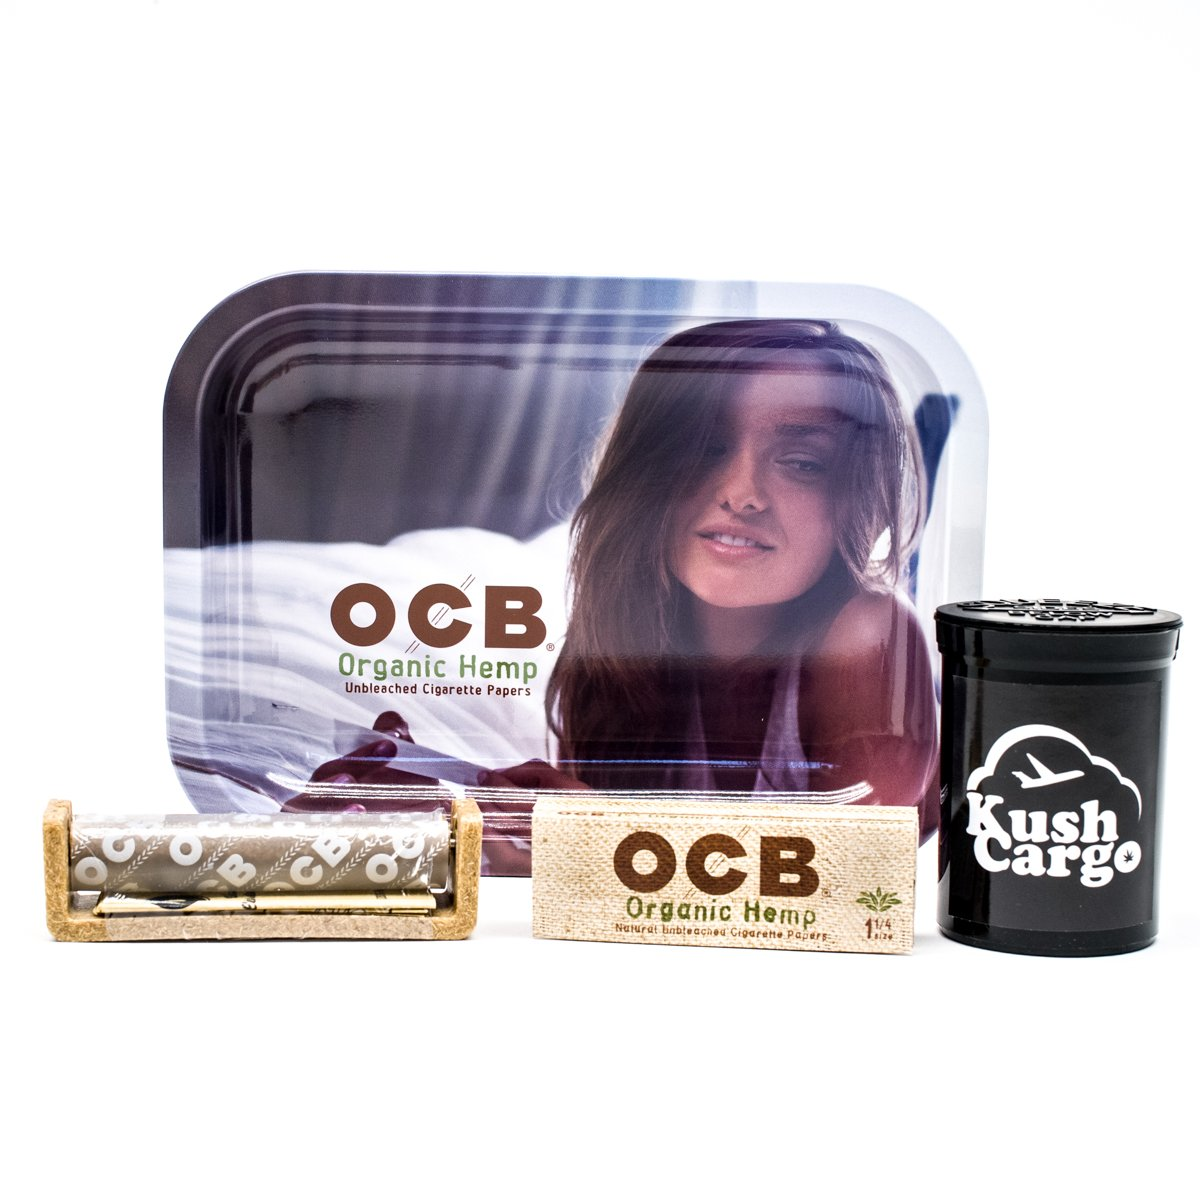 Bundle - 4 Items - OCB Rolling Tray Travel Size with OCB Rolling Papers and Roller (Girl)